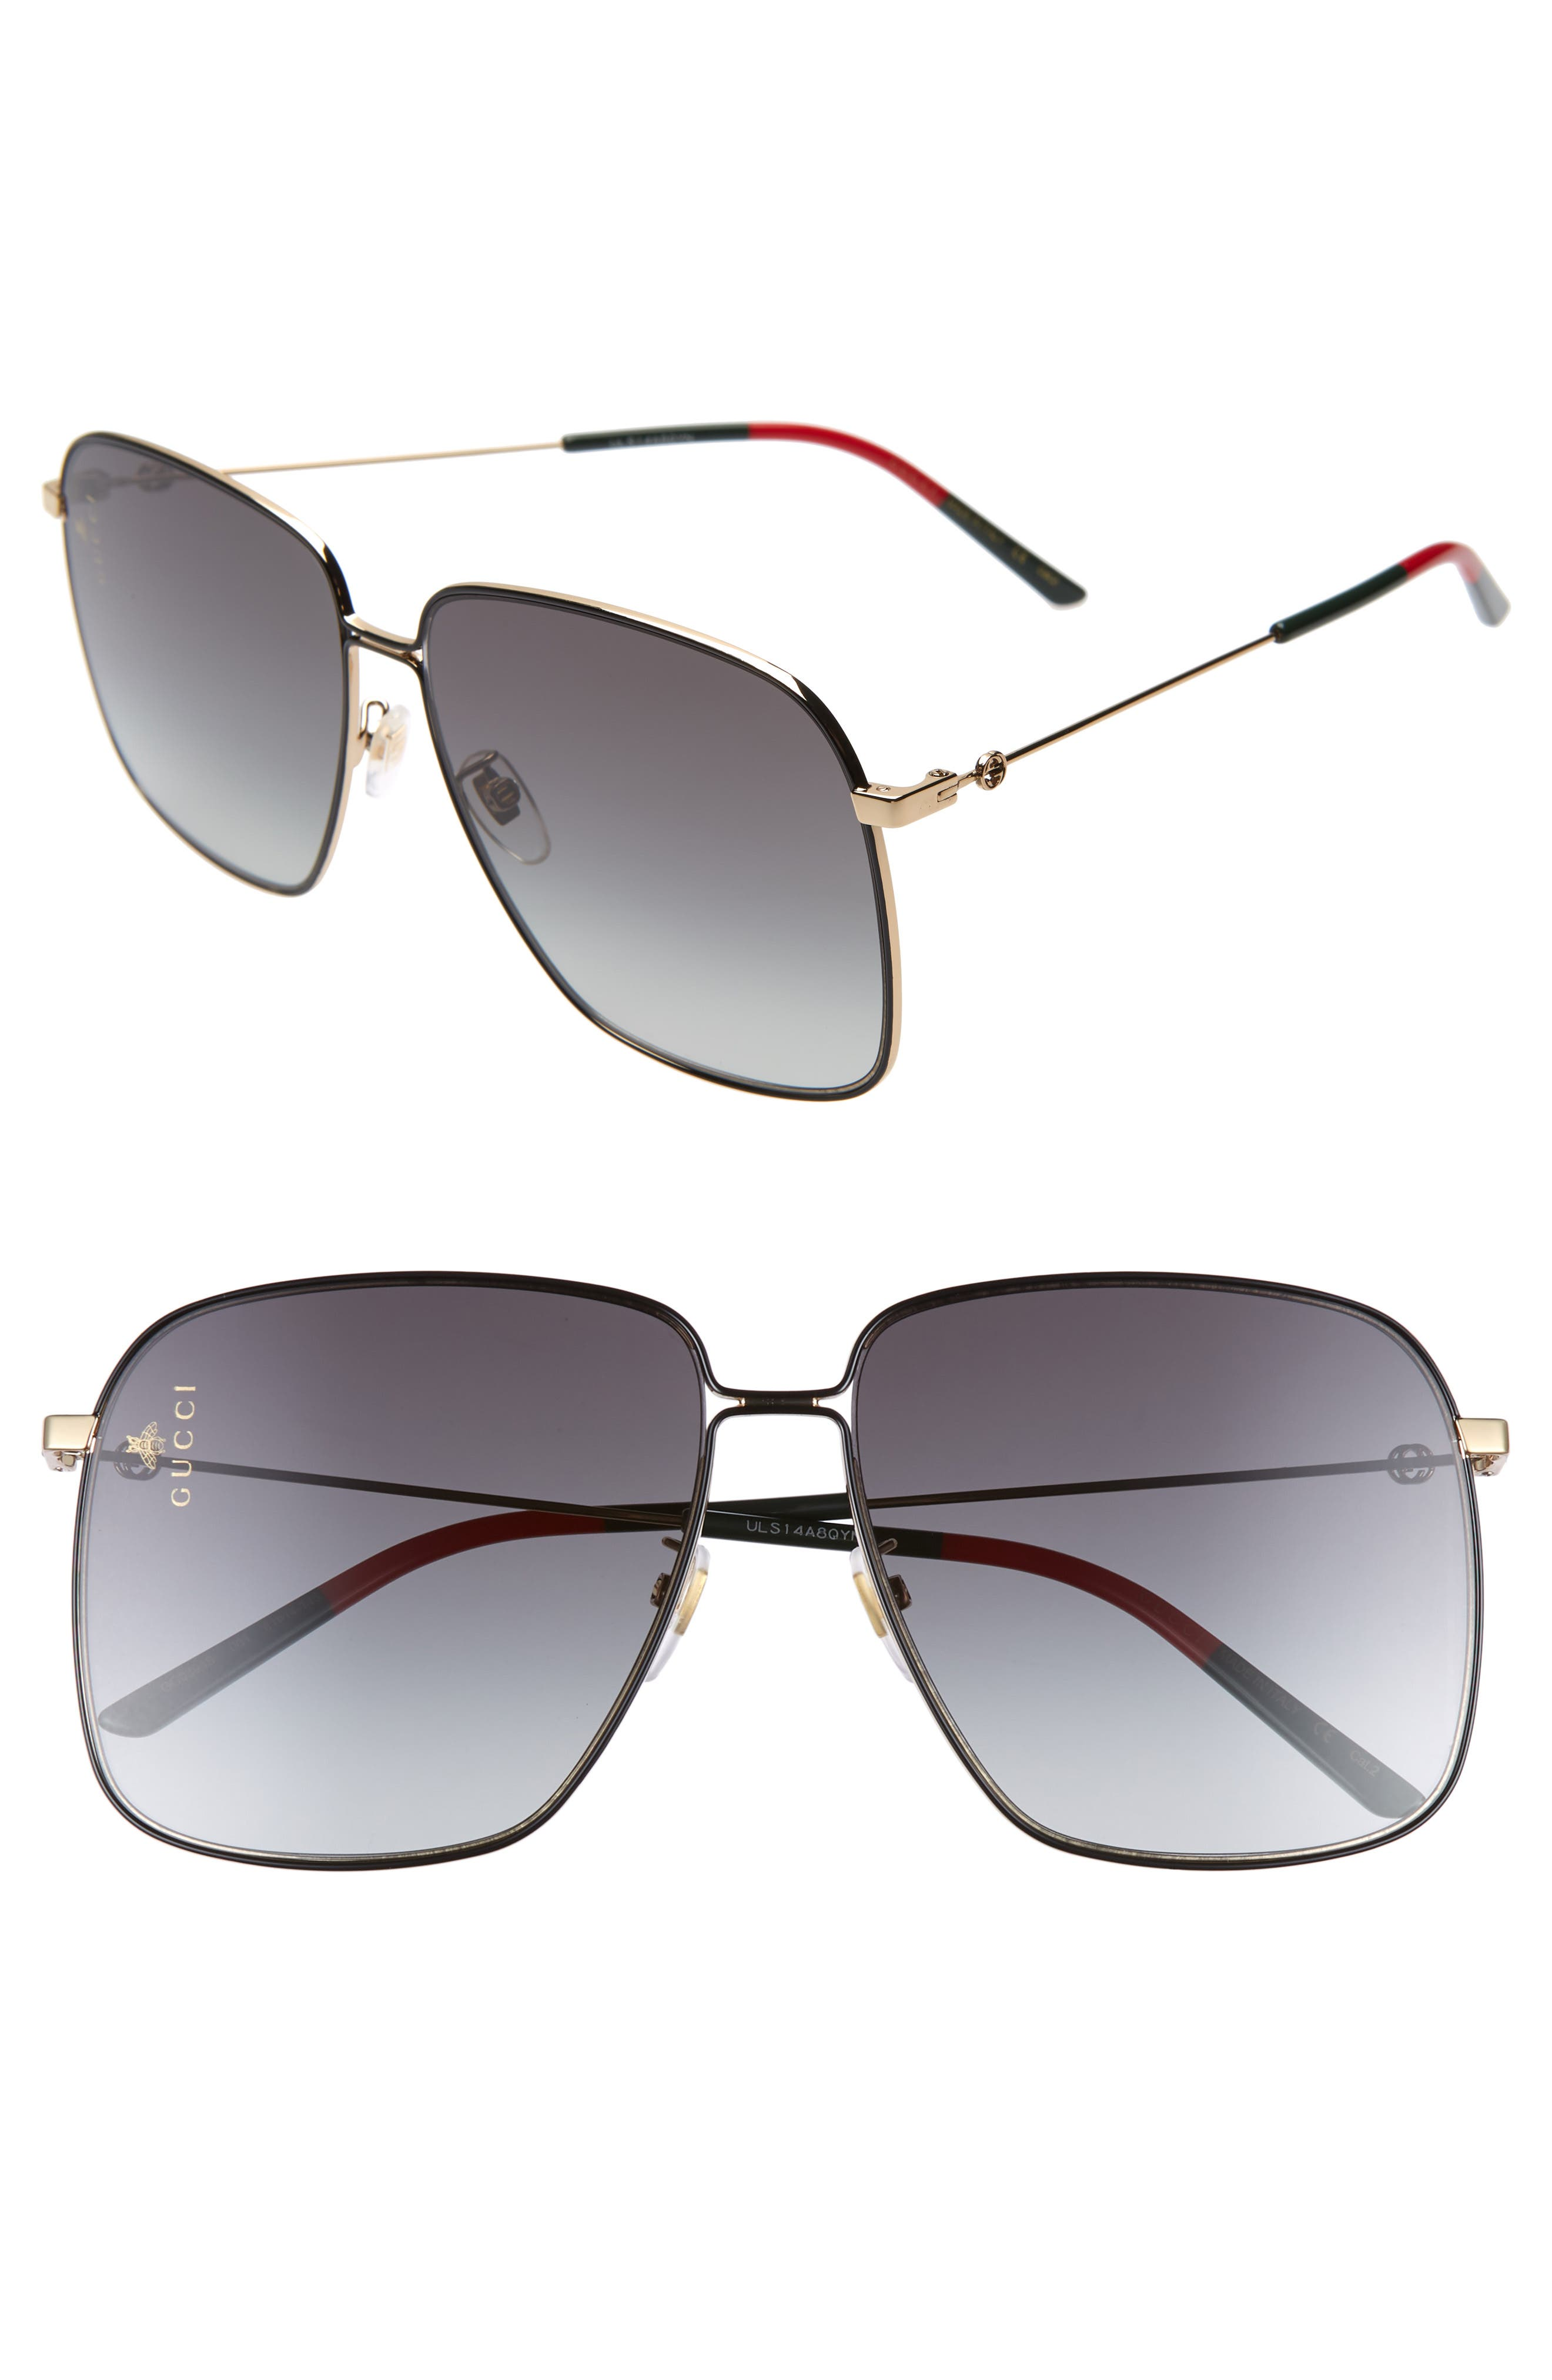 GUCCI,                             61mm Square Sunglasses,                             Main thumbnail 1, color,                             GOLD/GREEN/RED/GREY GRADIENT